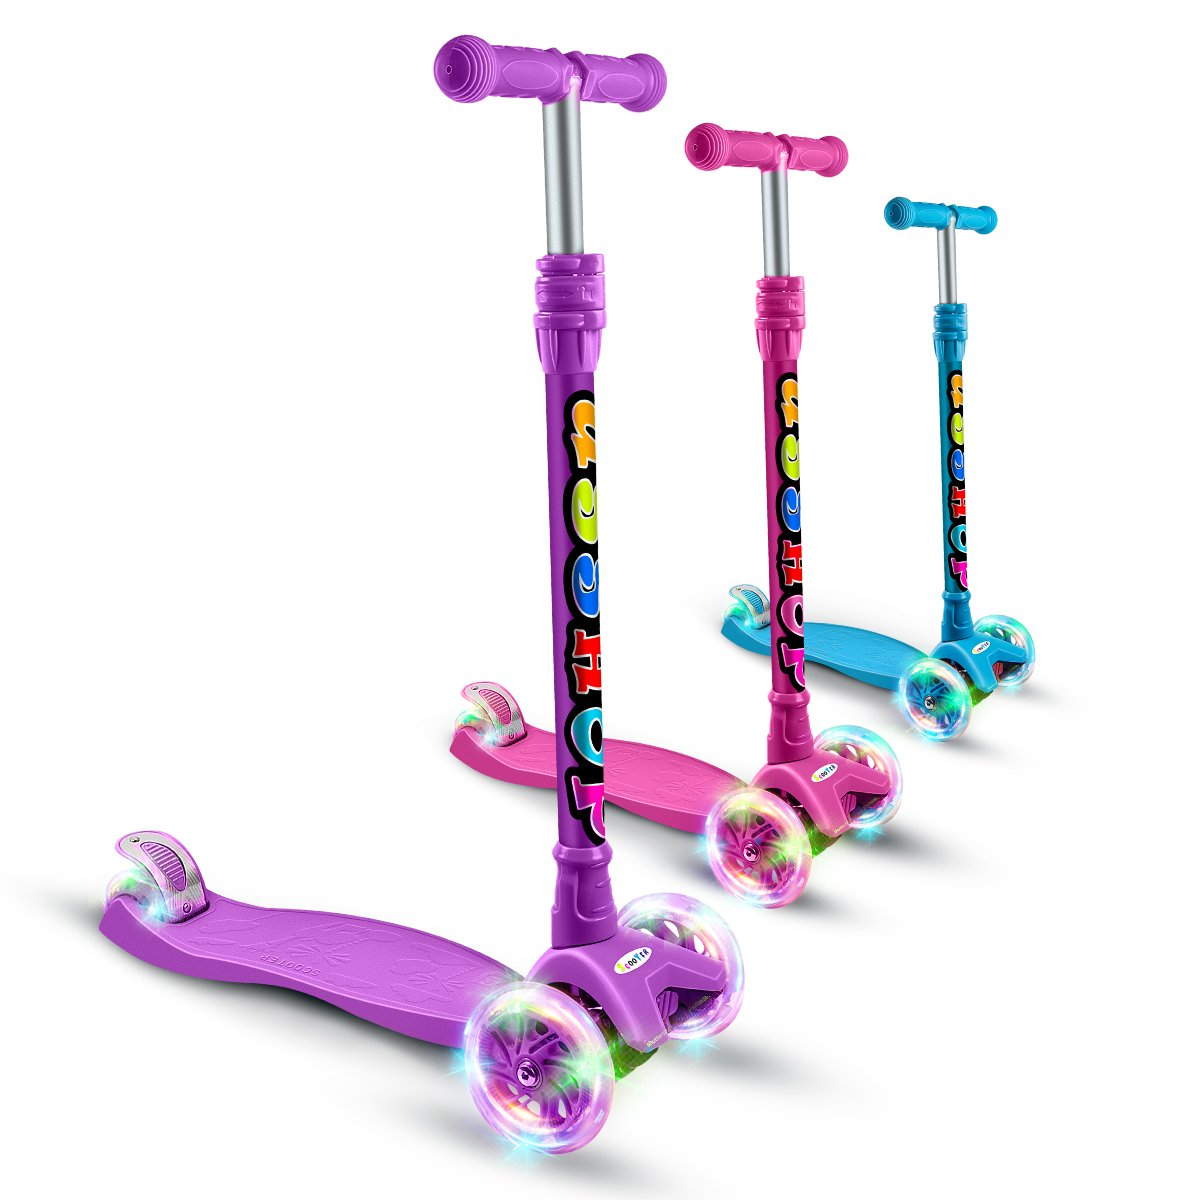 OUTON Kick Scooter for Kids 3 Wheel Scooter Lean to Steer 4 Adjustable Height Glider Ride On PU Flashing Wheels for Children 3-12 Year Old All Parts 10 Years Warranty Purple